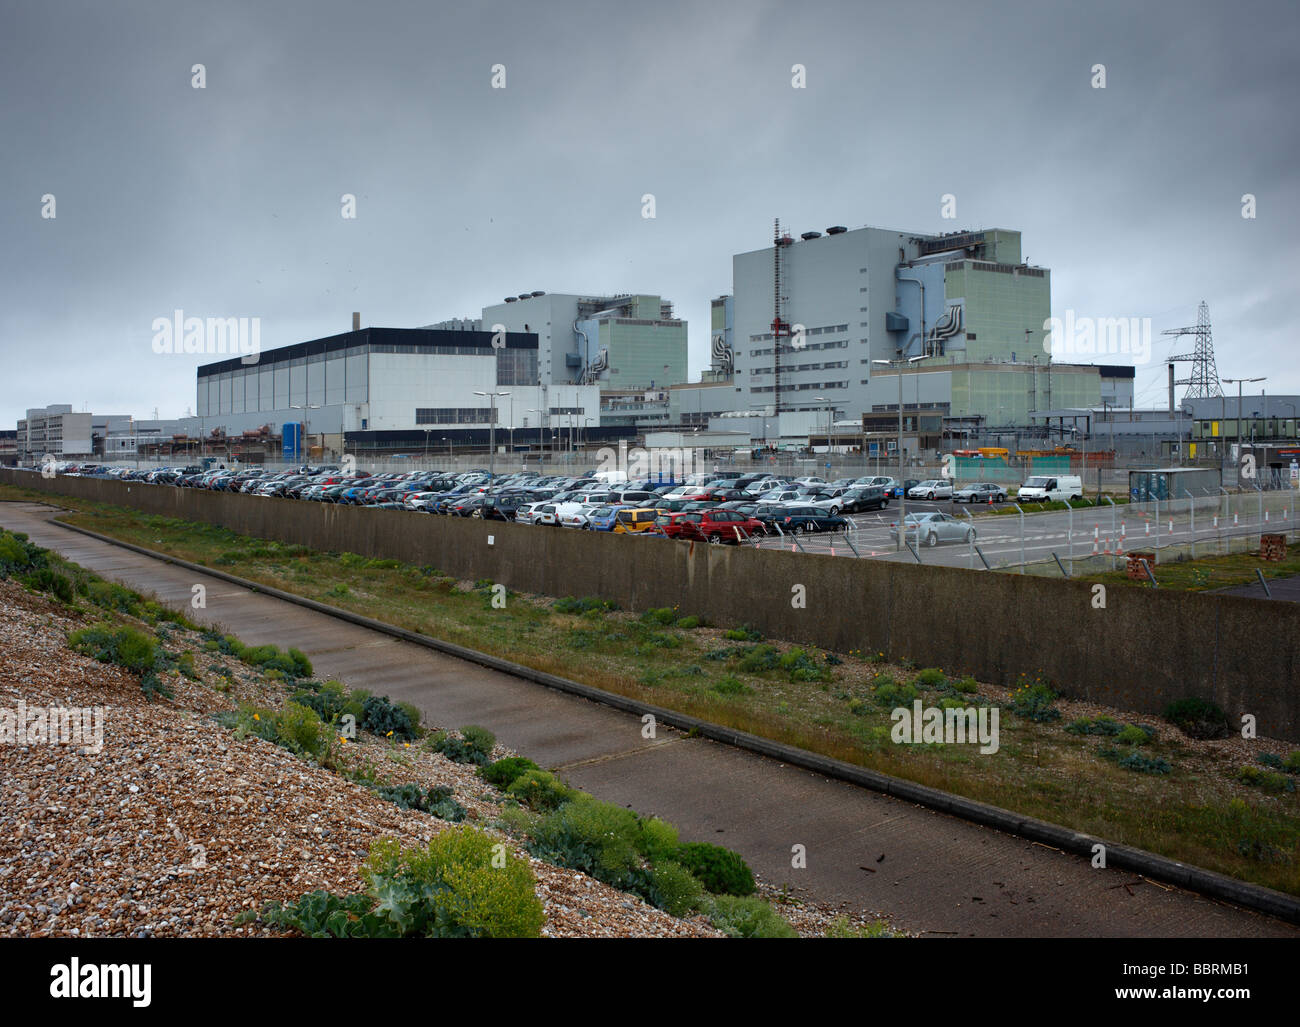 Dungeness nuclear power station Dungeness Kent England UK - Stock Image